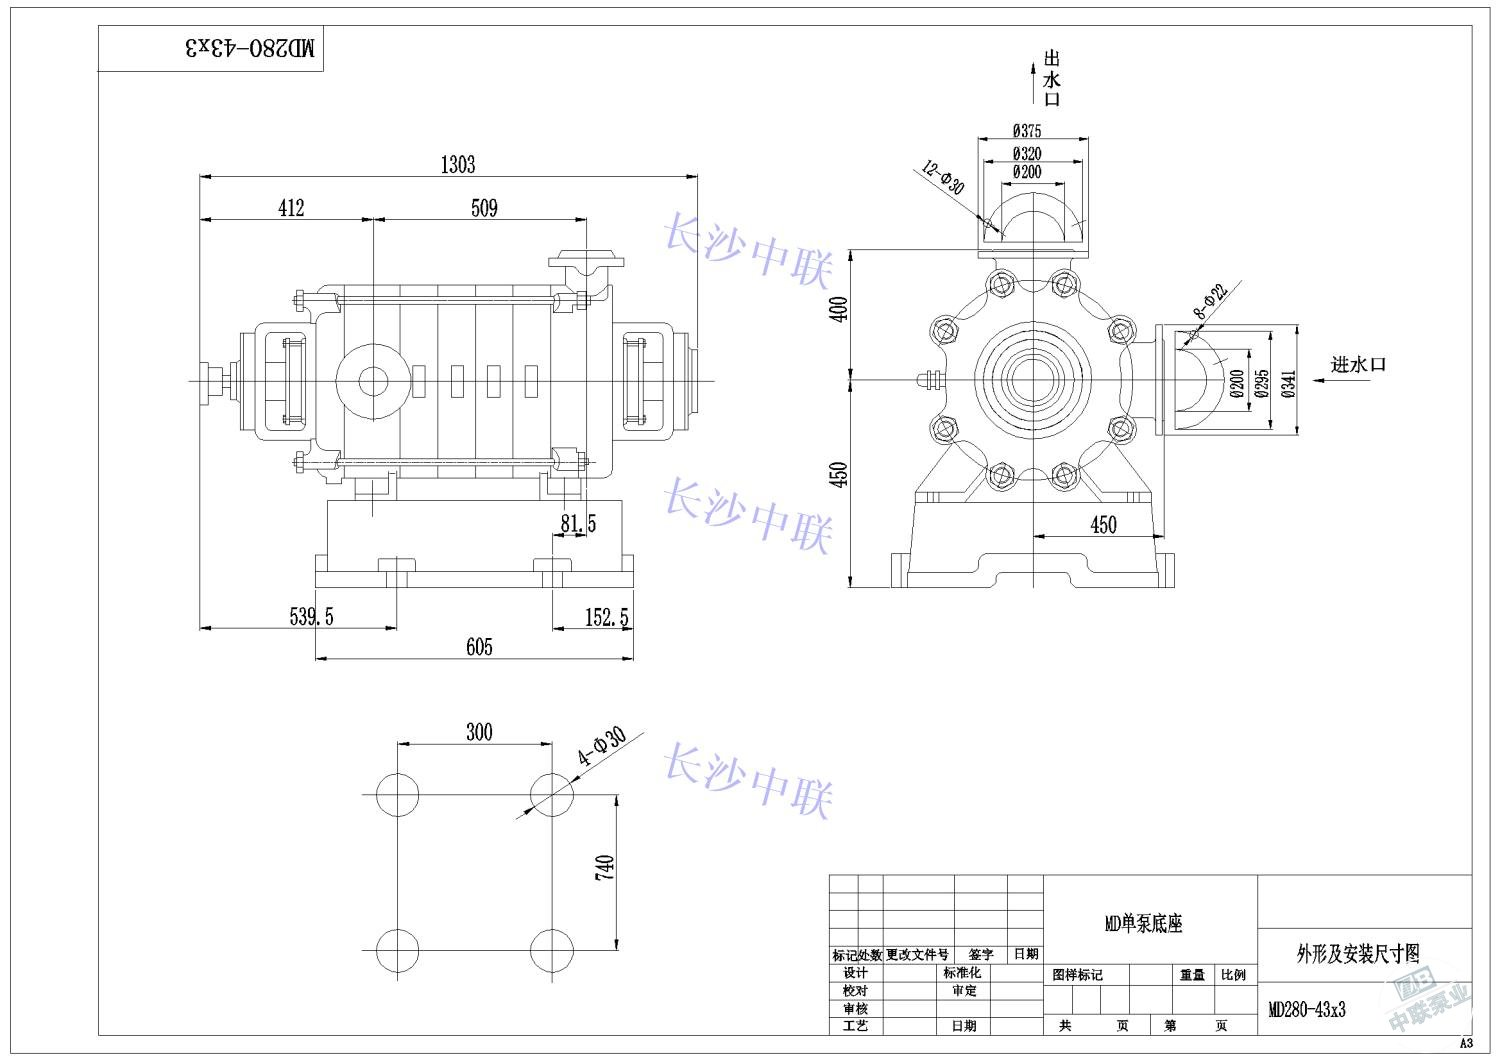 Md280-43×3 multi-stage centrifugal pump installation drawing